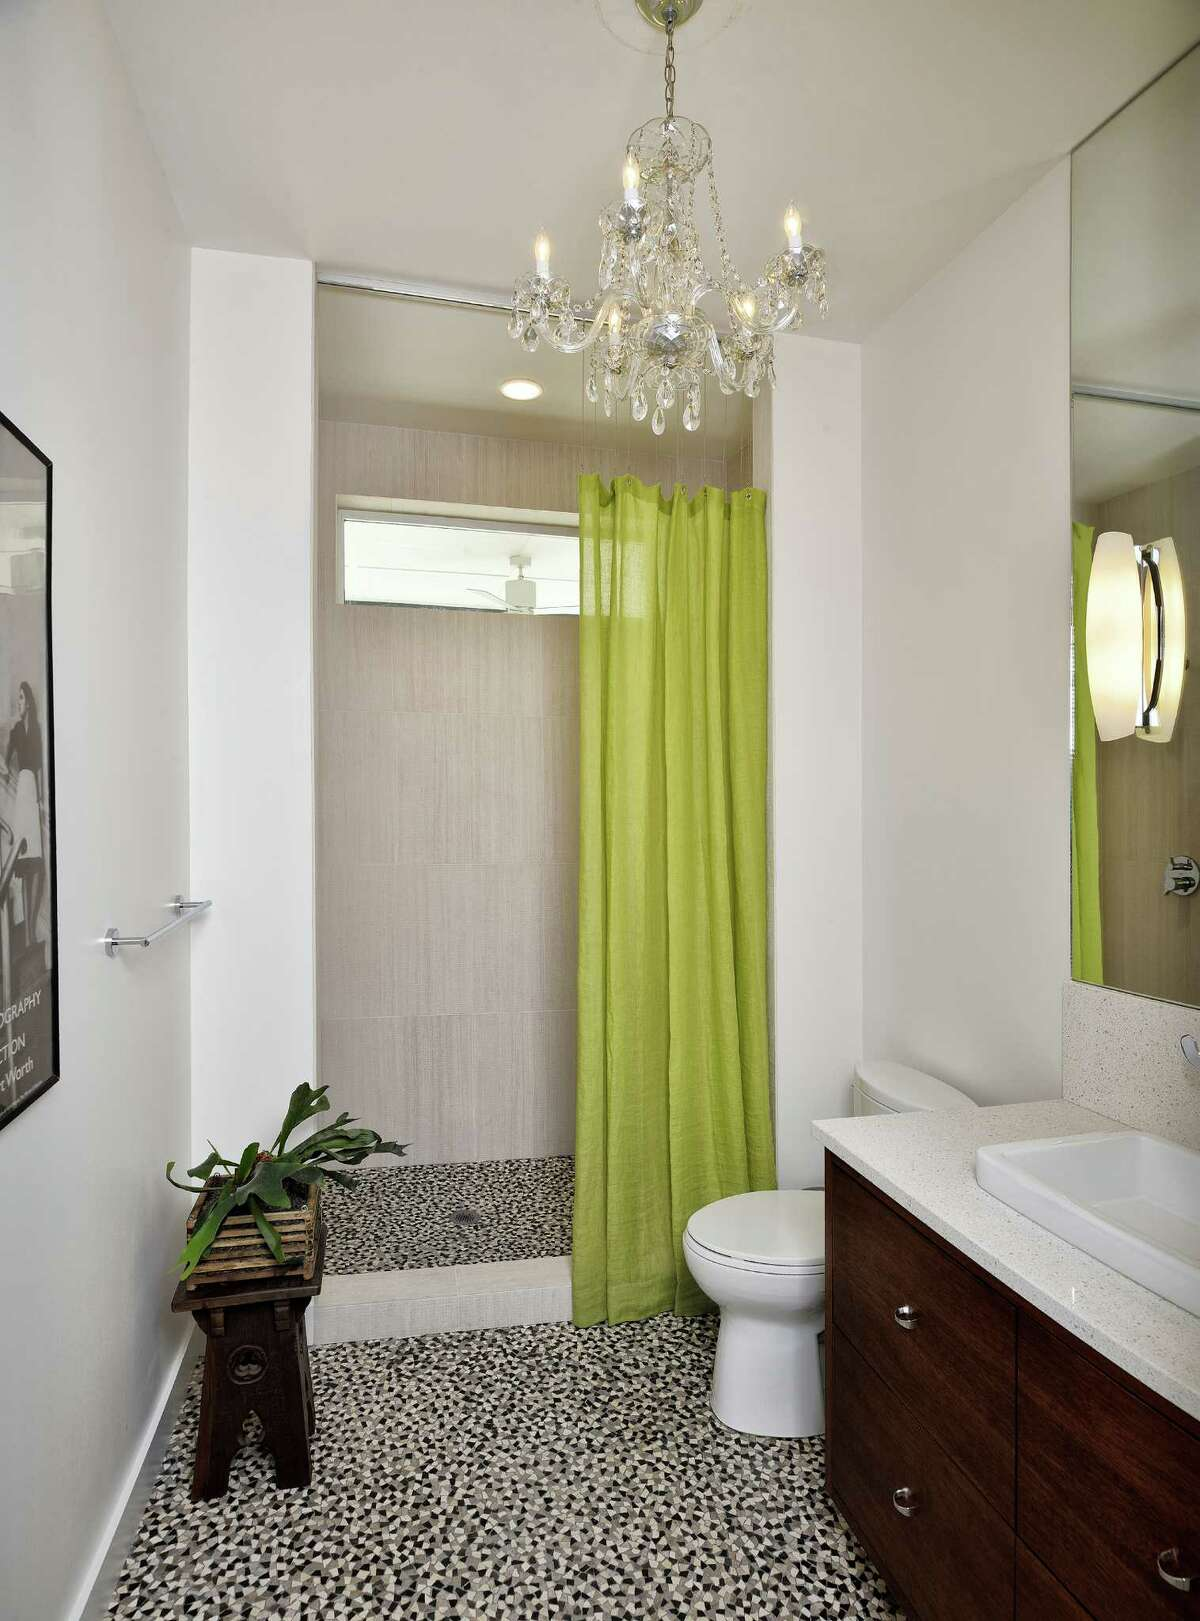 This guest bath wows with its high ceilings, mosaic tile flooring and sparkling chandelier. Its designer was Laura Michaelides of Four Square Design Studio. Full story here.